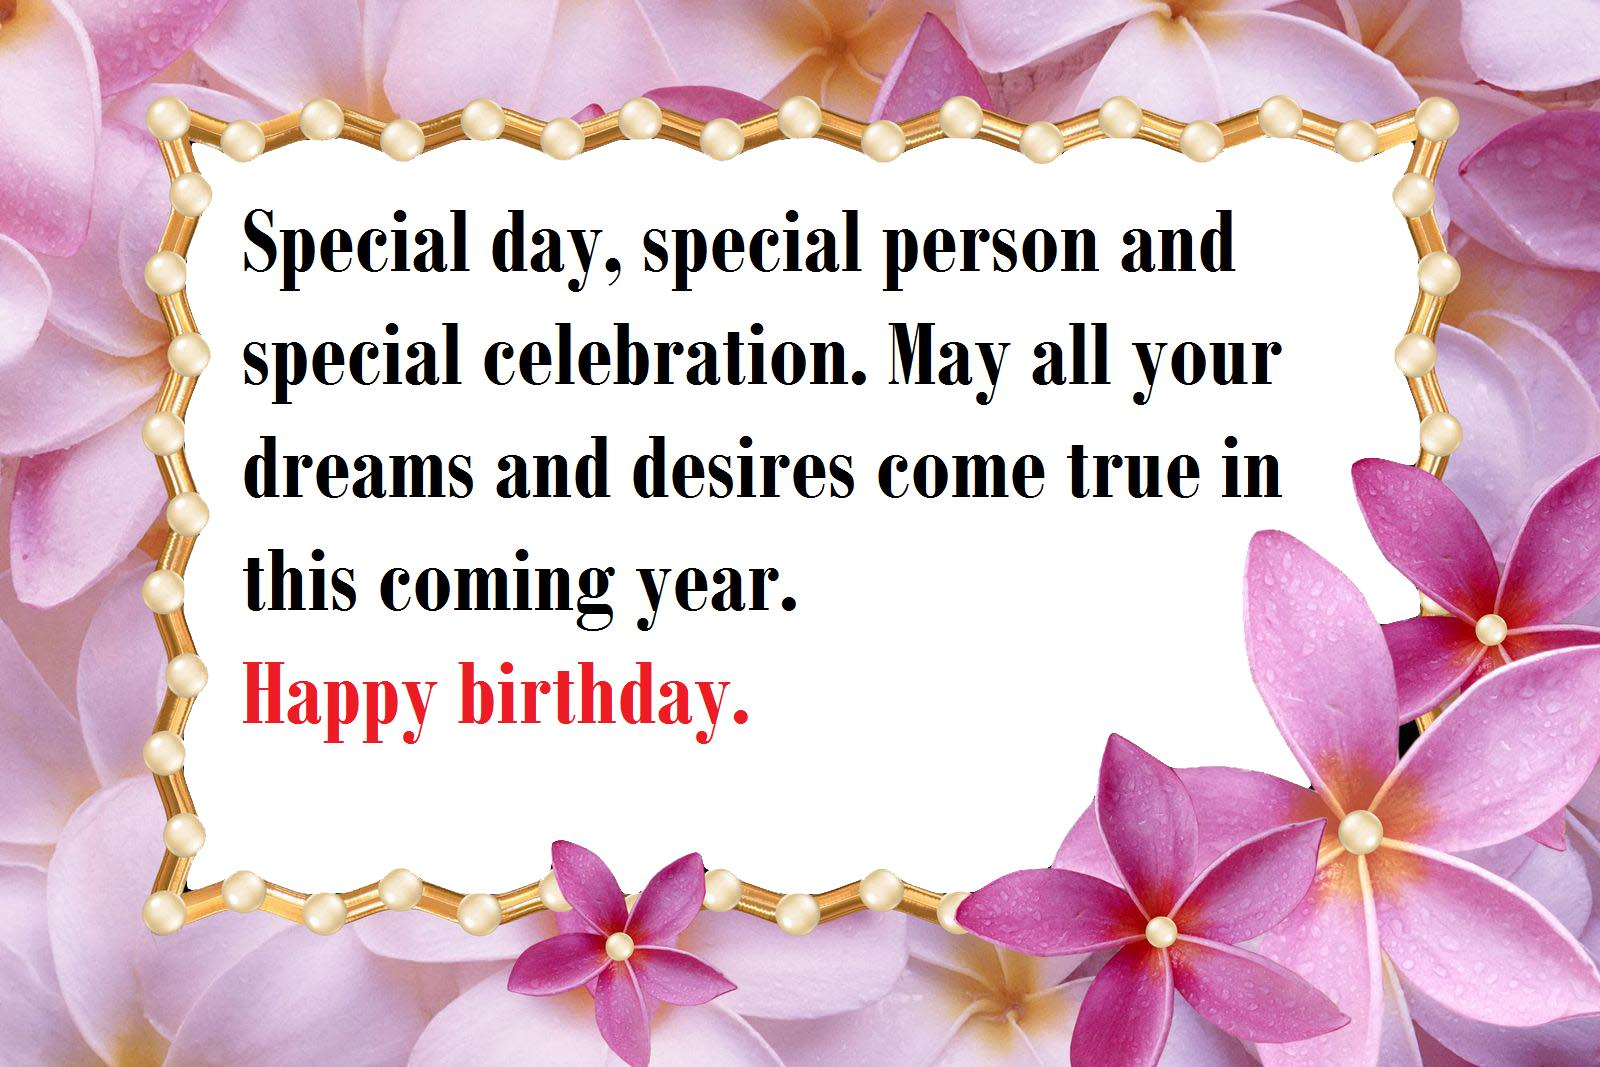 birthday wishes wallpaper download ; Beautiful-Birthday-Images-Pics-Wallpapers-Download